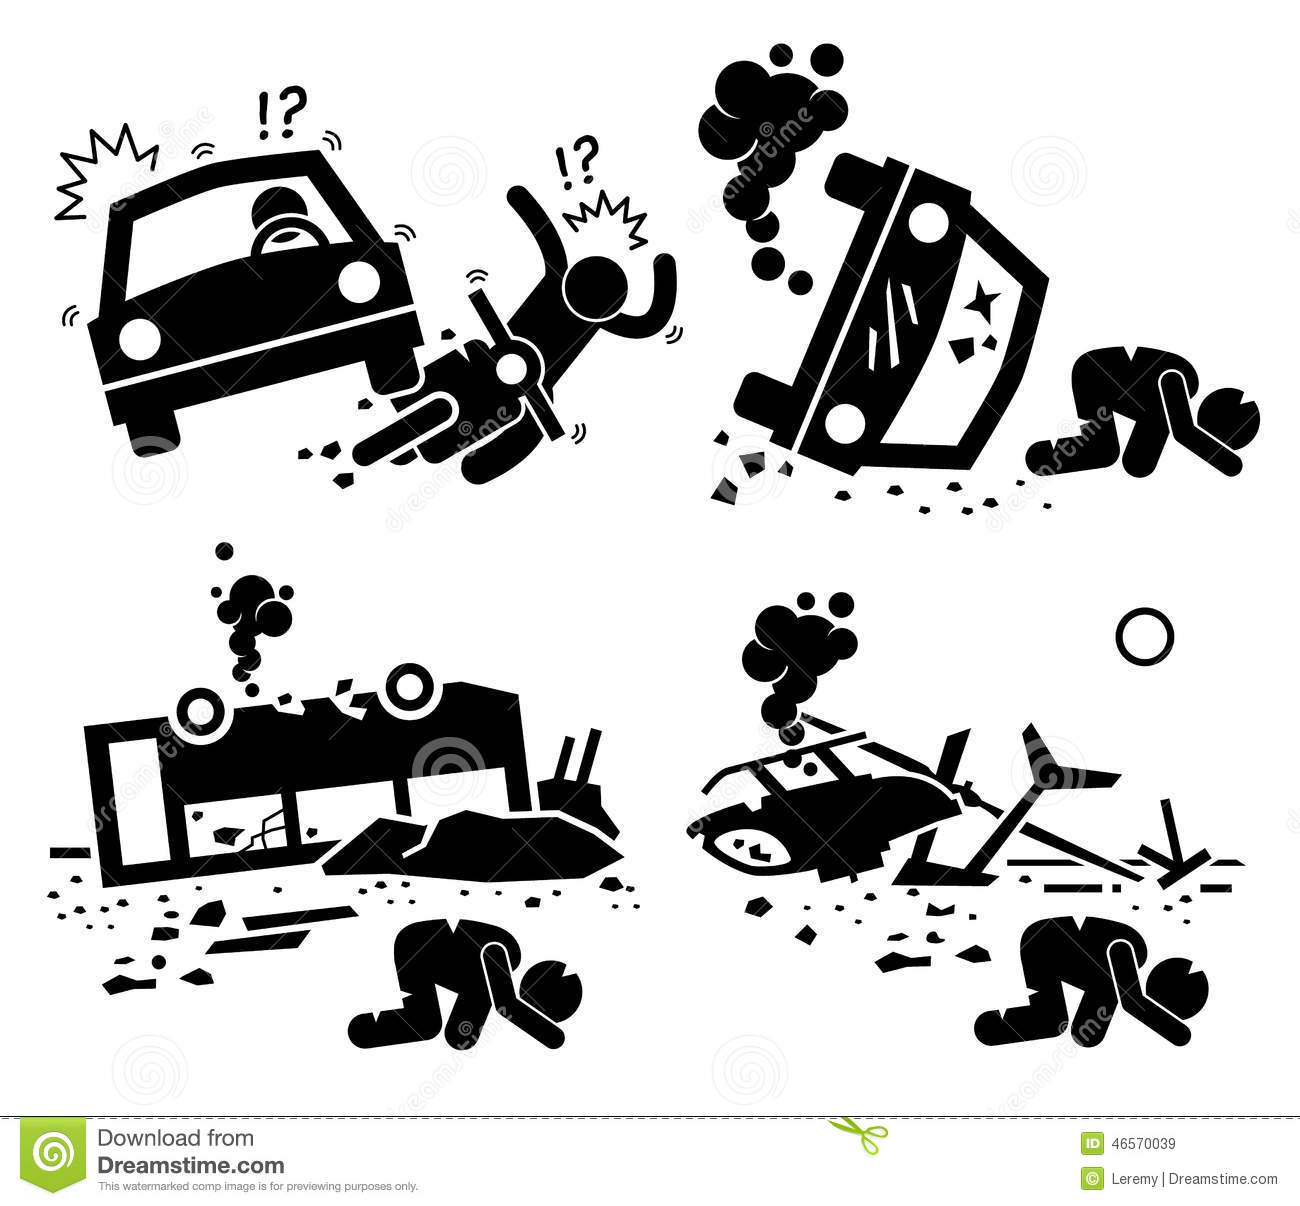 Bus Accident Stock Illustrations – 172 Bus Accident Stock ...